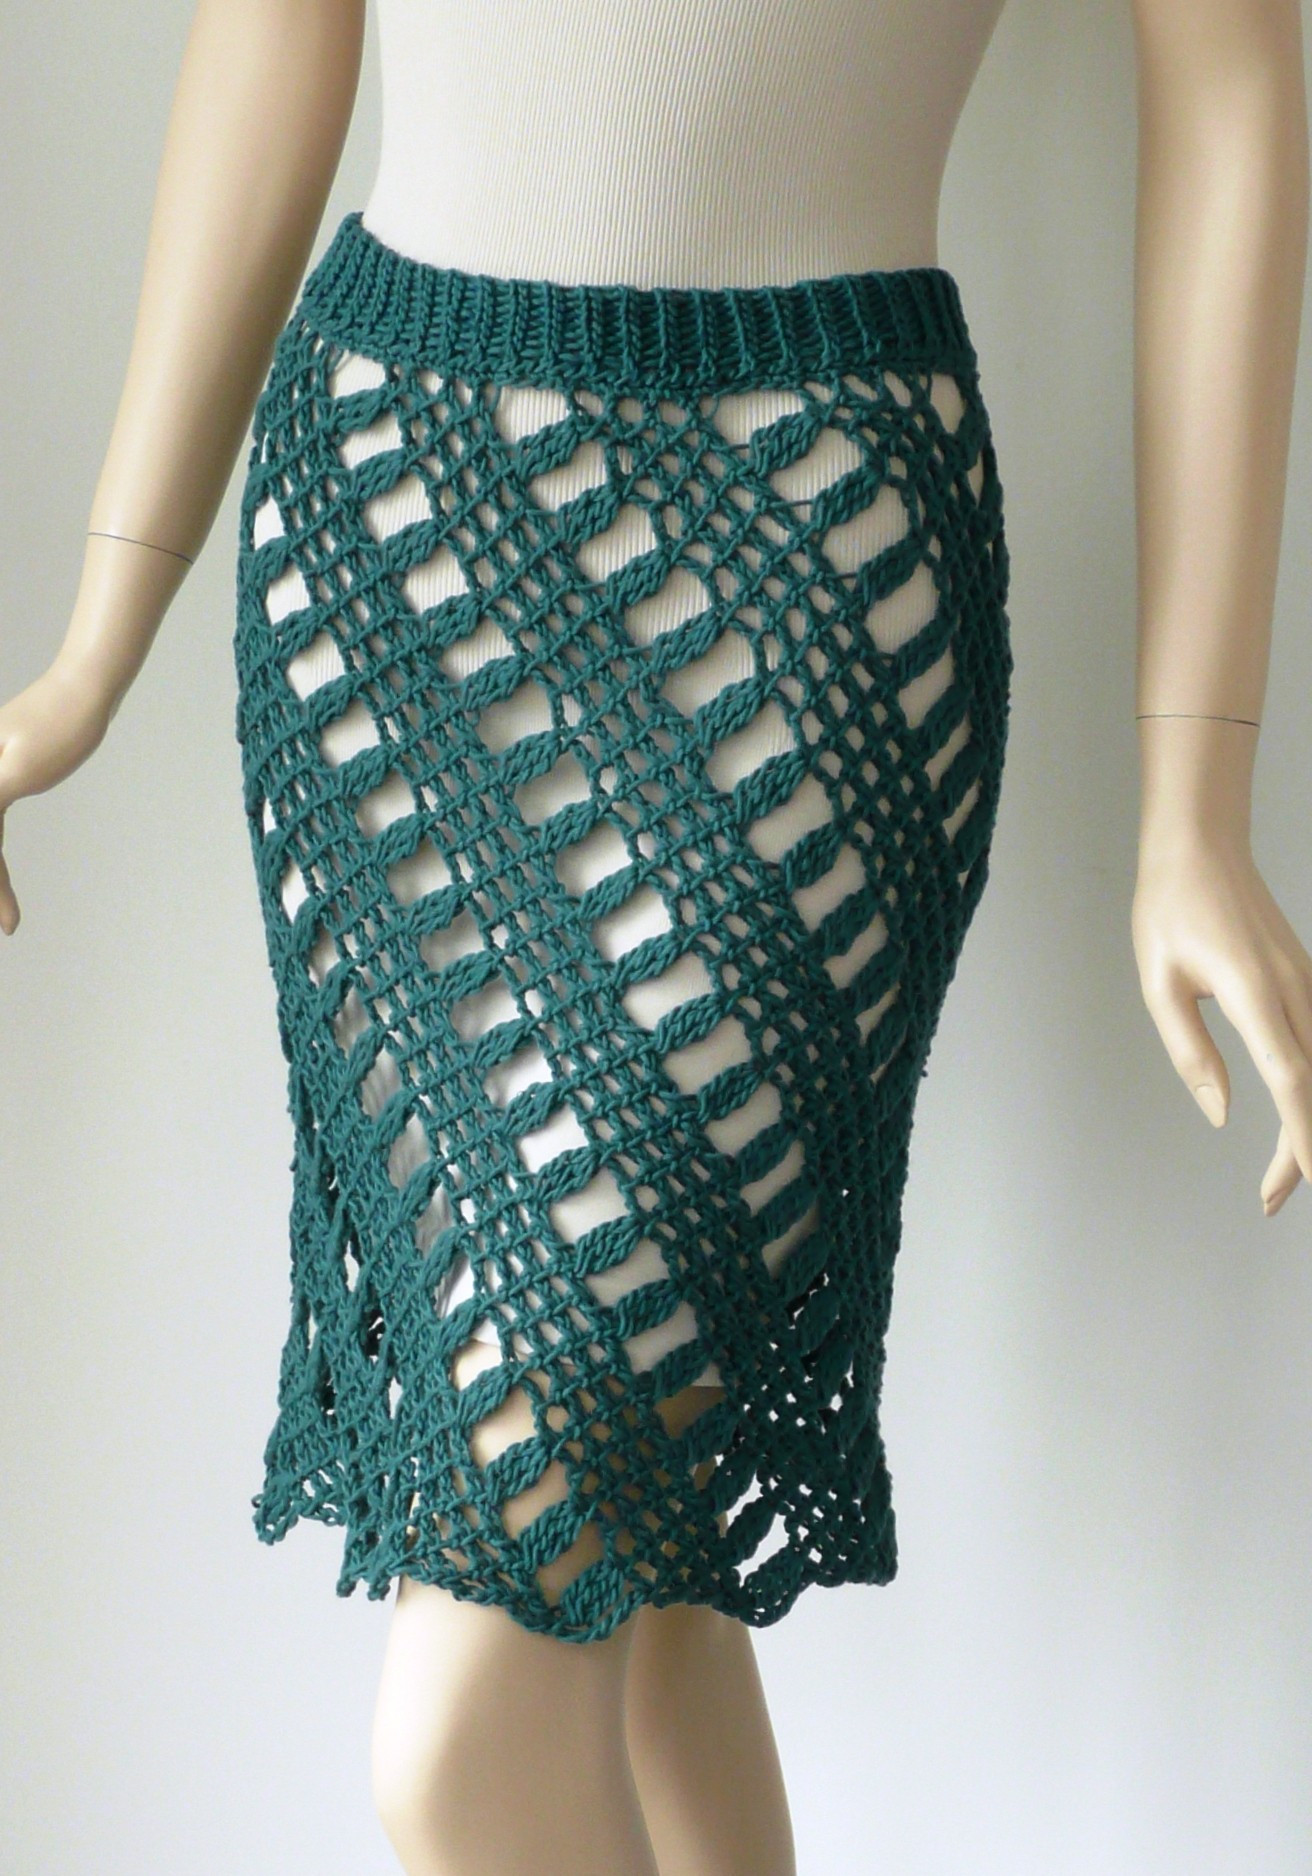 Crochet Skirt Patterns Inspirational Shantay Skirt Of Fresh 47 Ideas Crochet Skirt Patterns